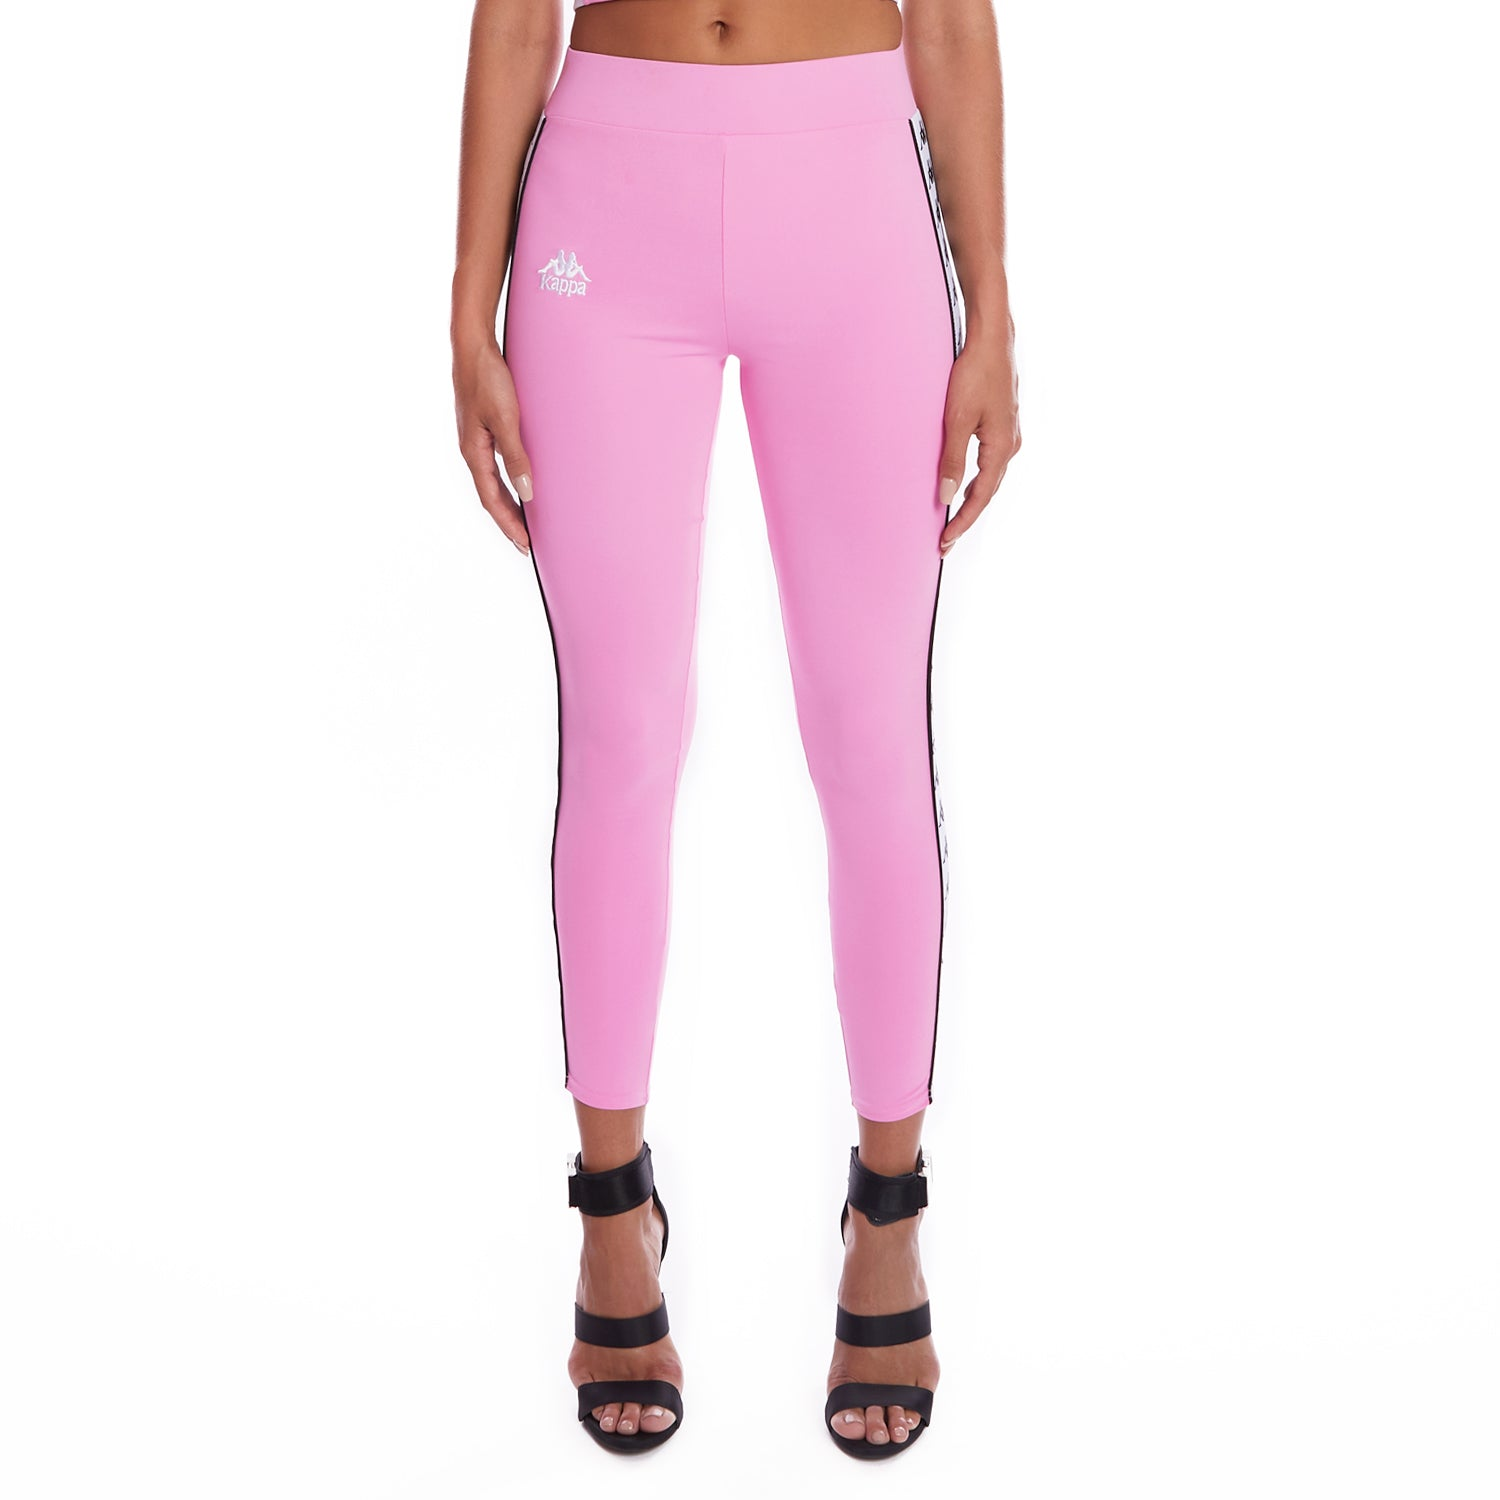 Kappa 222 Banda Barrio Leggings Pink 1